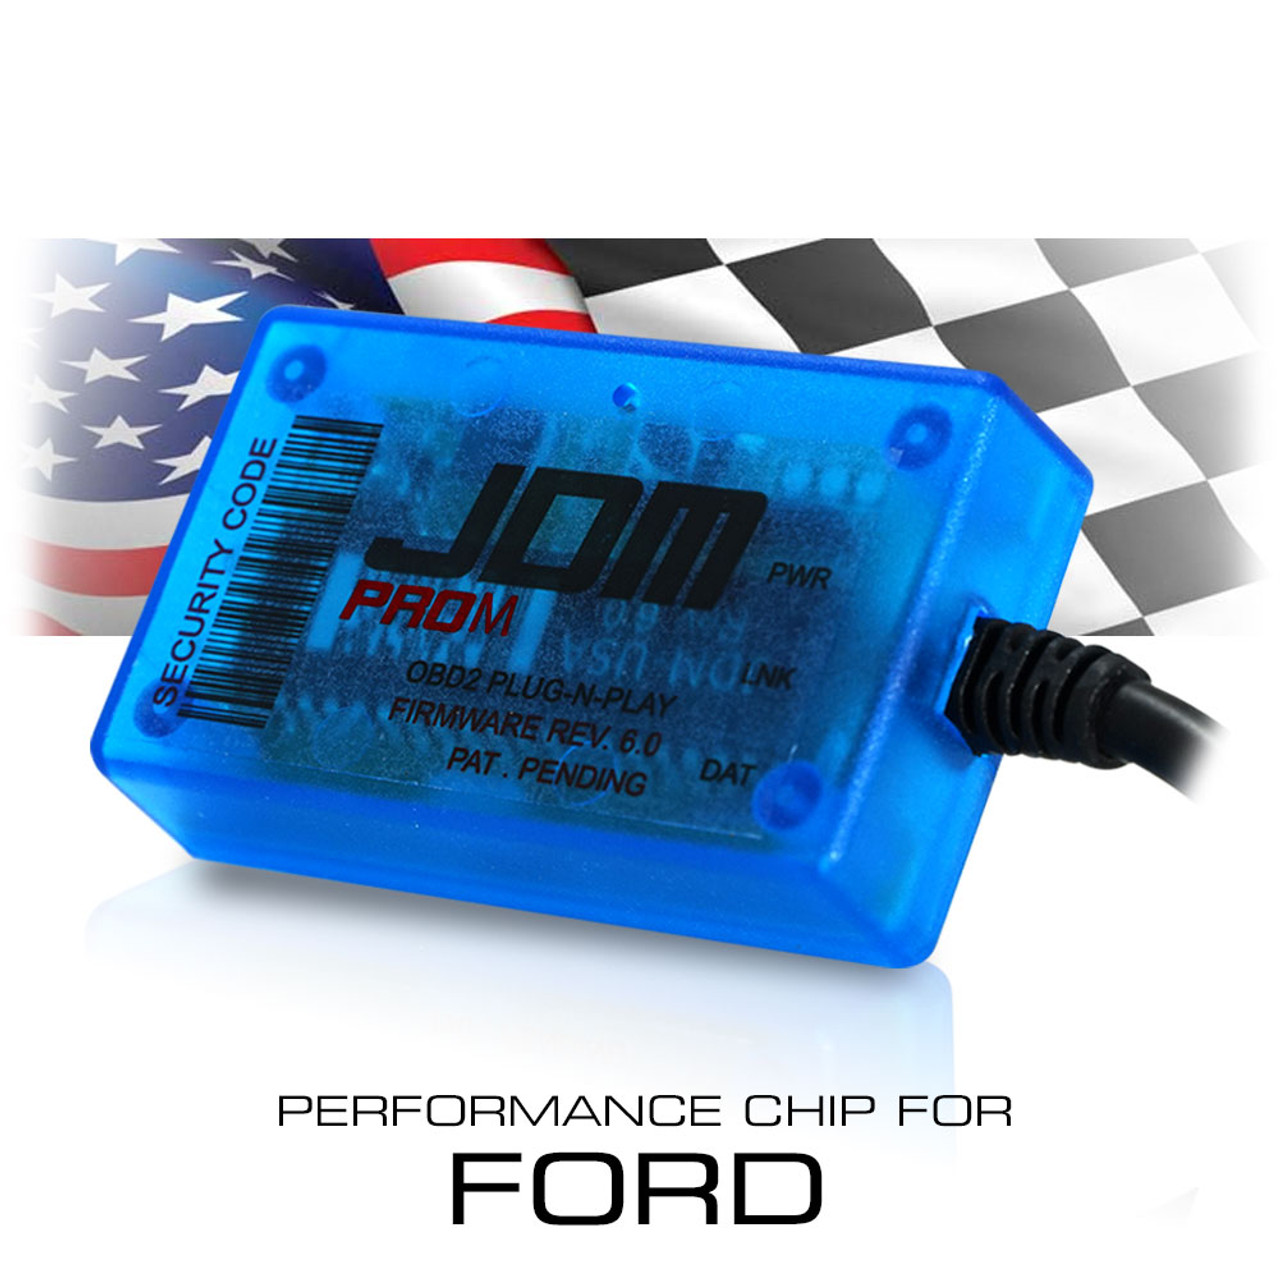 Stage 3 Performance Chip Obdii Module For Ford Performance Chip Tuning